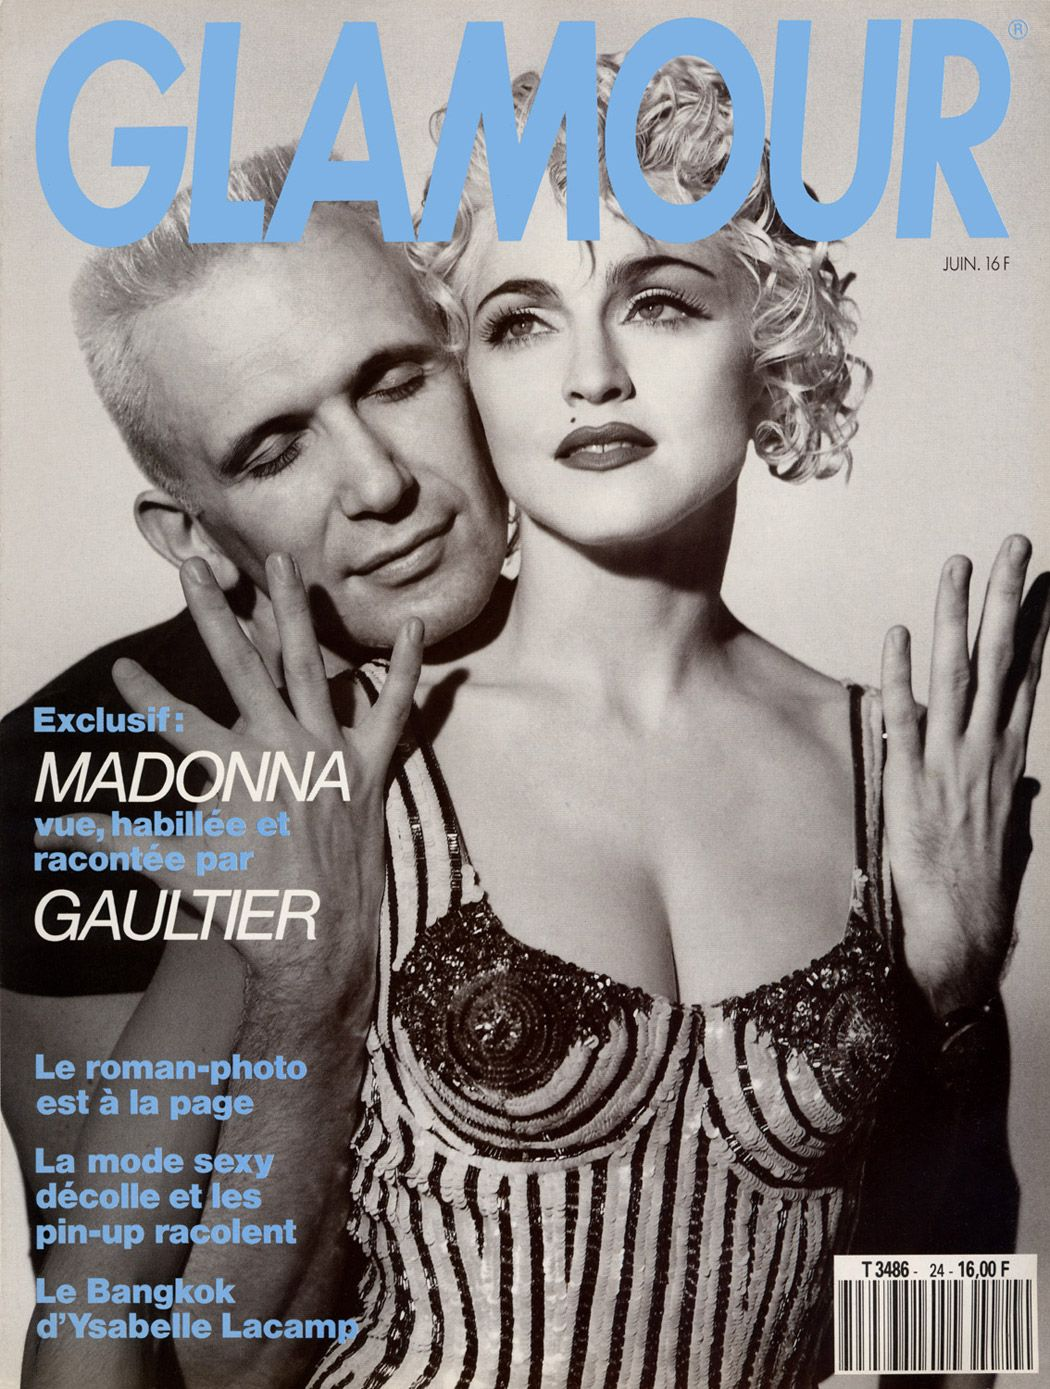 Madonna and Jean Paul Gaultier on the cover of Glamour.